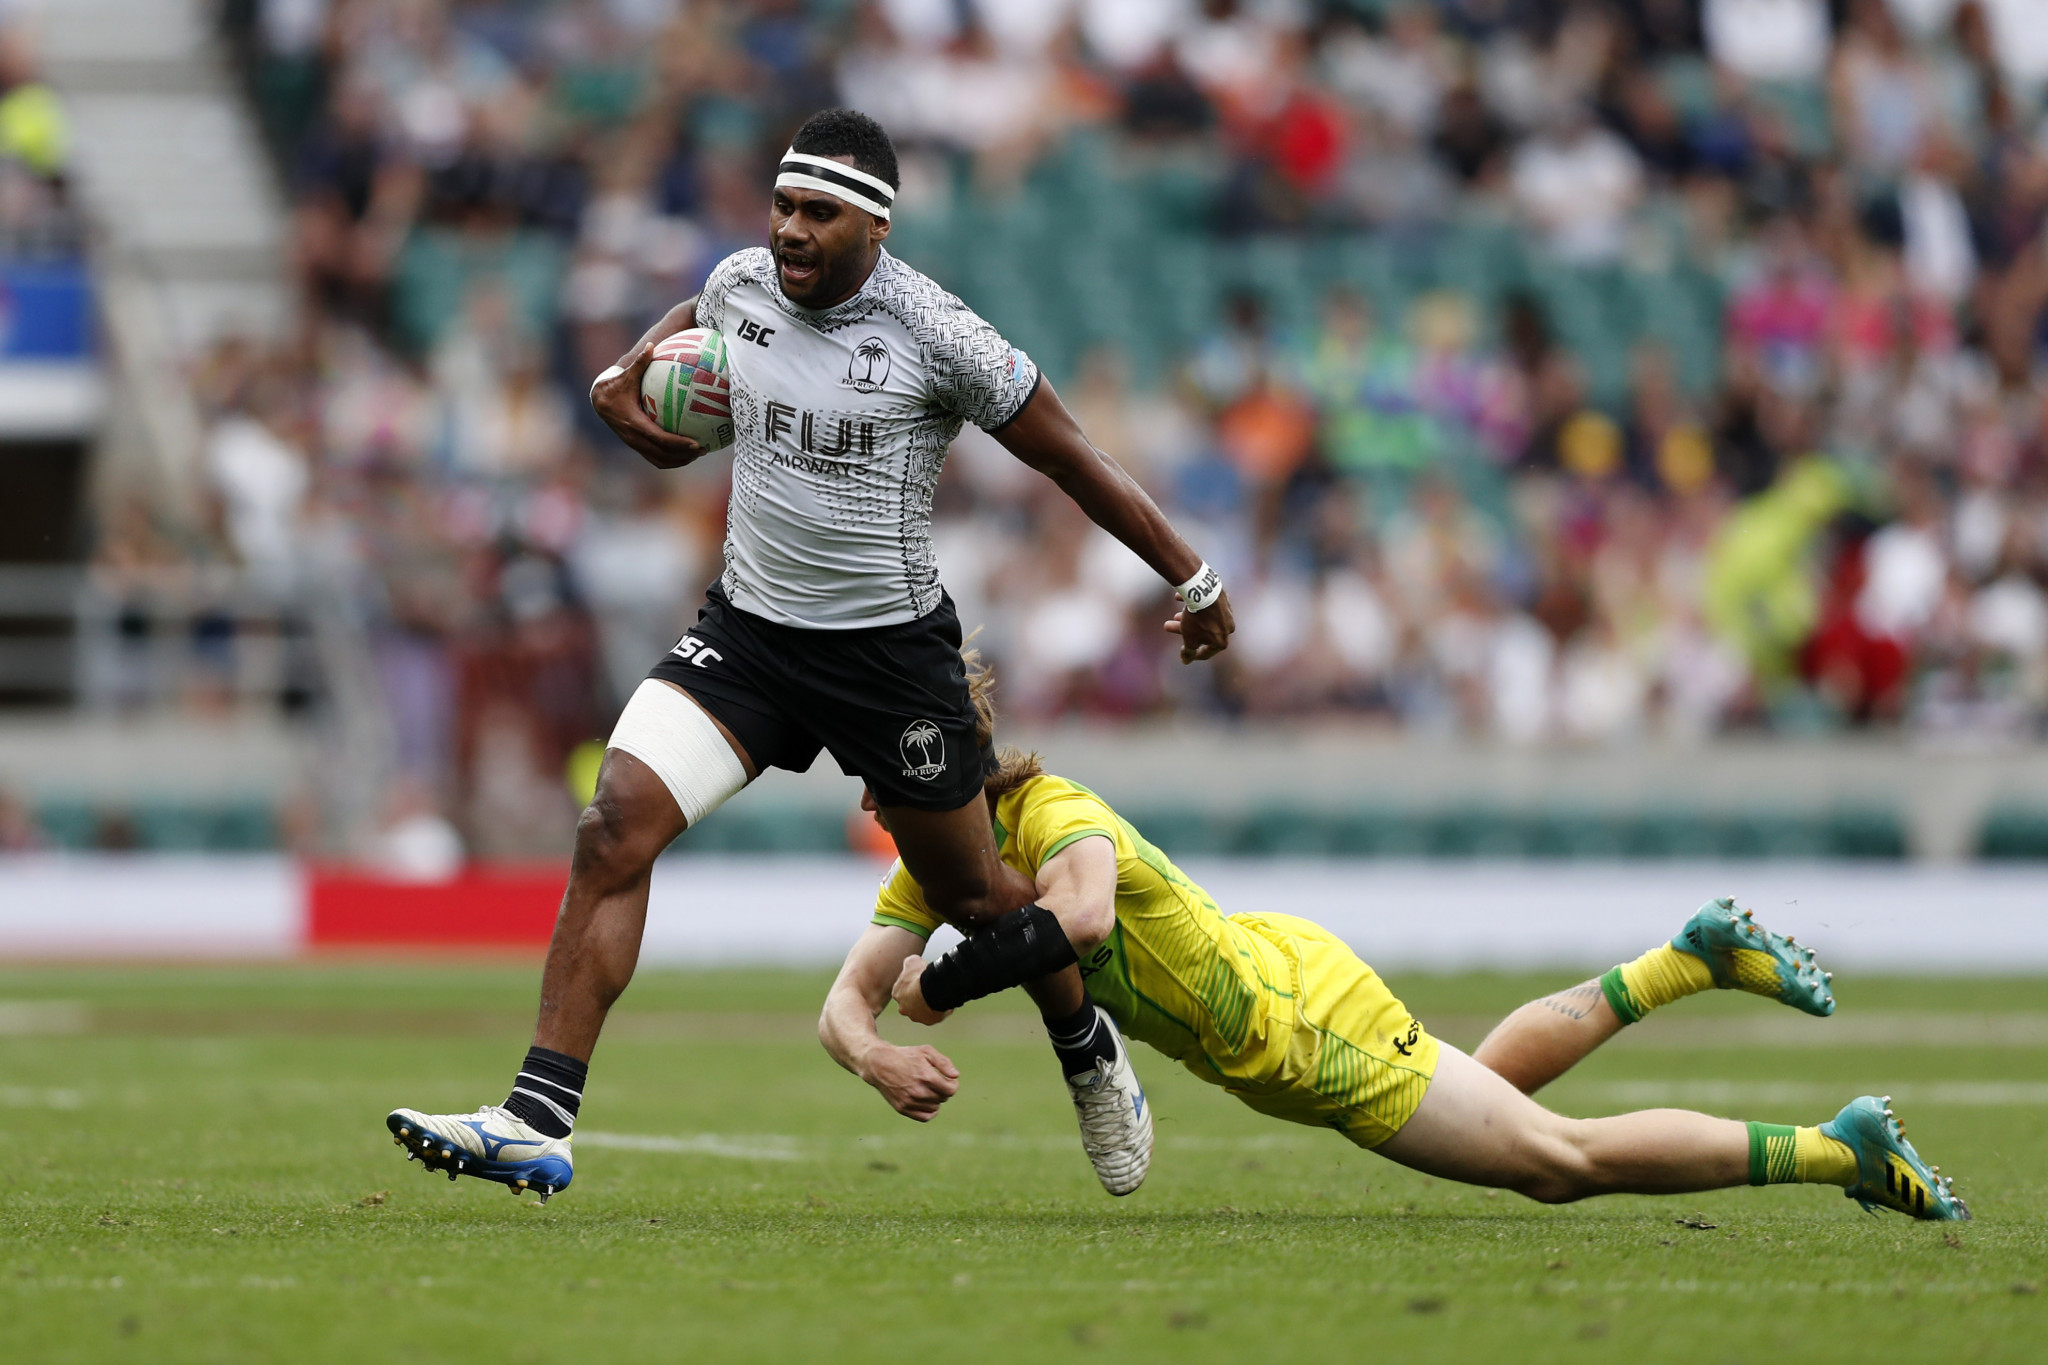 Olympic champions Fiji take overall lead with victory at World Rugby Sevens Series in London